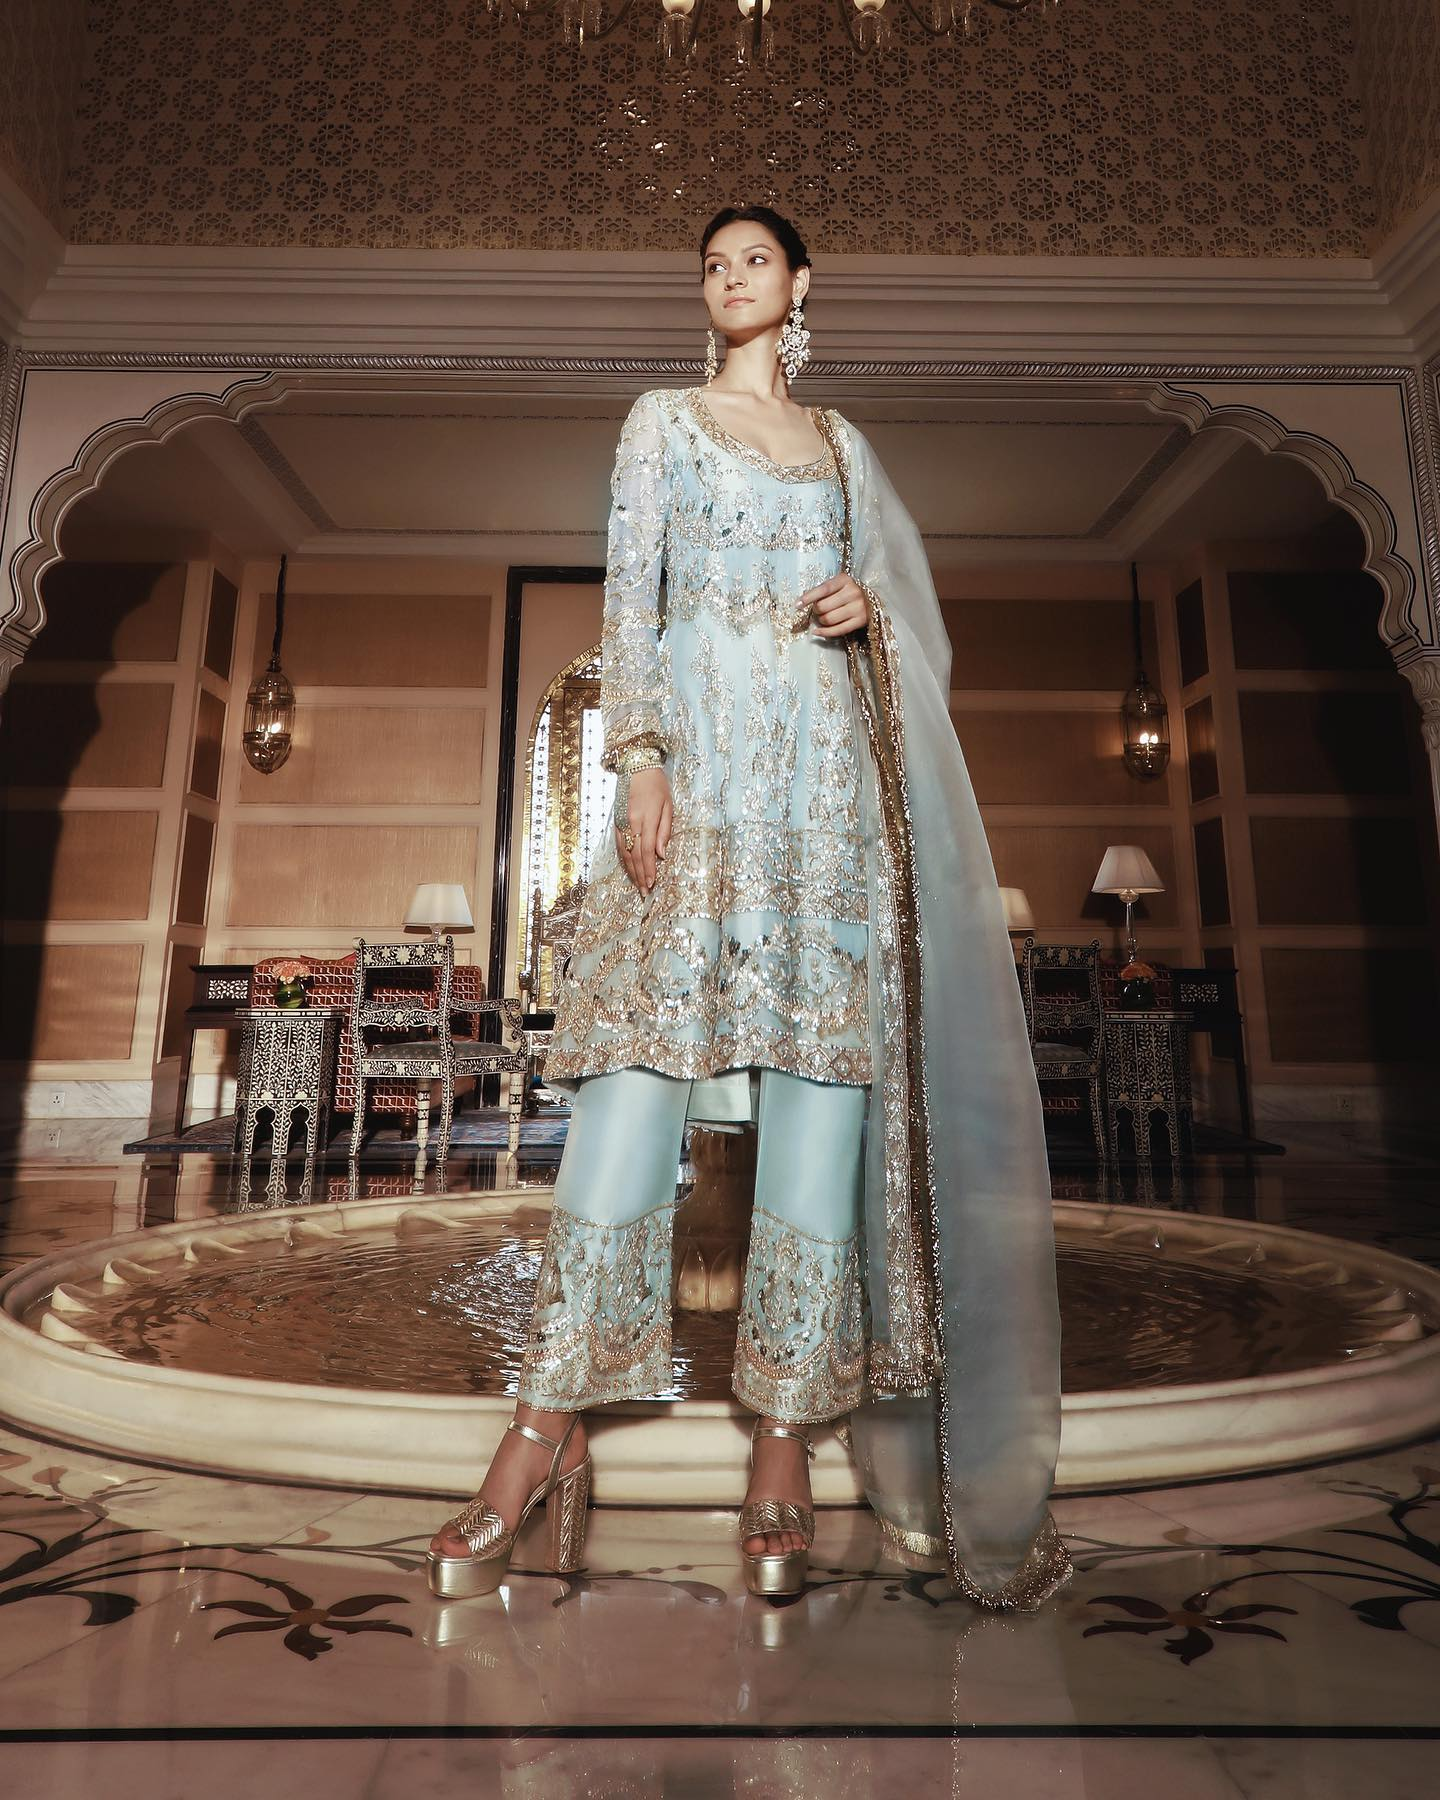 An incredible coalesce of traditional artistry with an elegant contemporary aesthetic in Manish Malhotra mint organza short Kalidar with delicate gold zardosi and sequins embroidery in a scalloped form and a tonal drape trimmed with gold Kinari! 2021-03-31